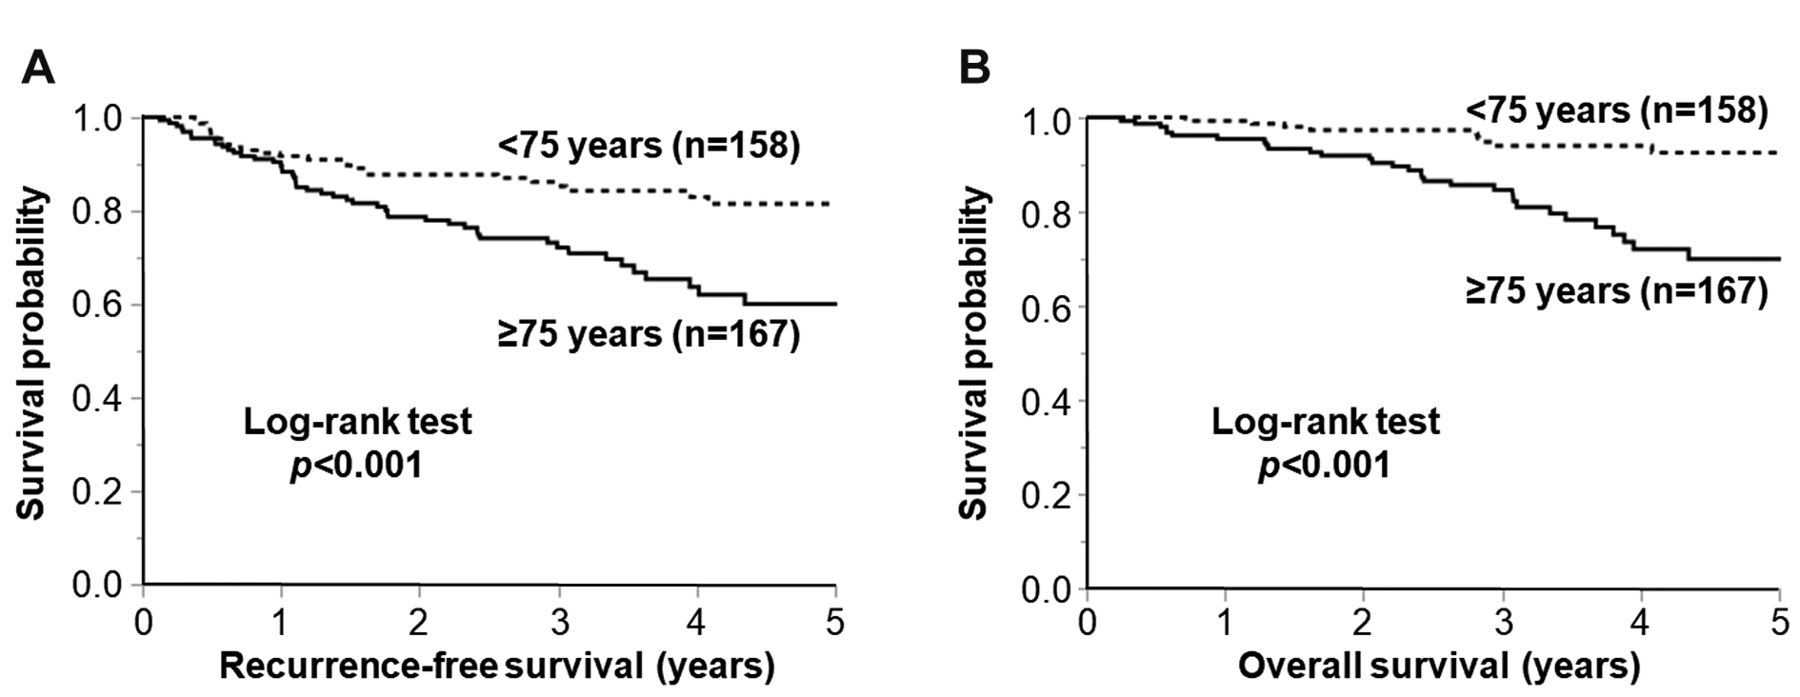 Advanced Age Is A Risk Factor For Recurrence After Resection In Stage Ii Colorectal Cancer